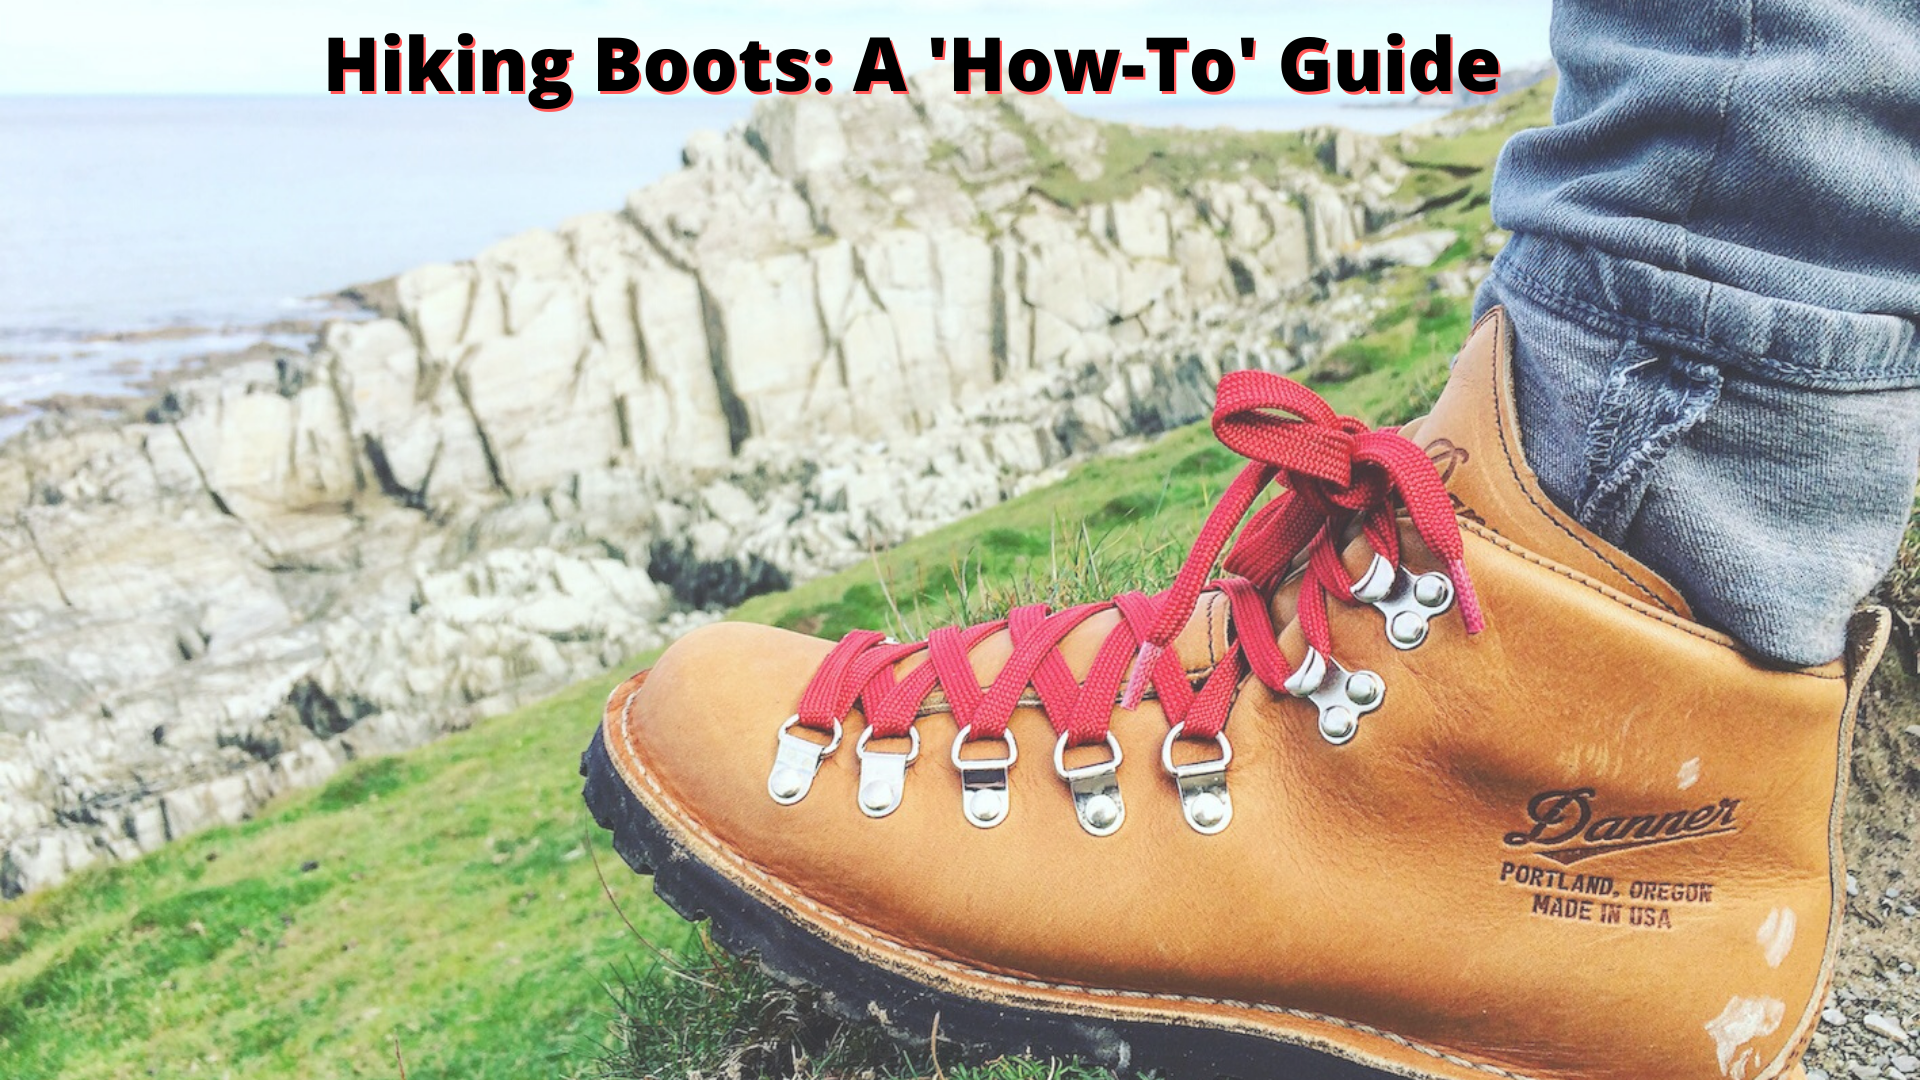 Hiking Boots: A 'How-to' Guide